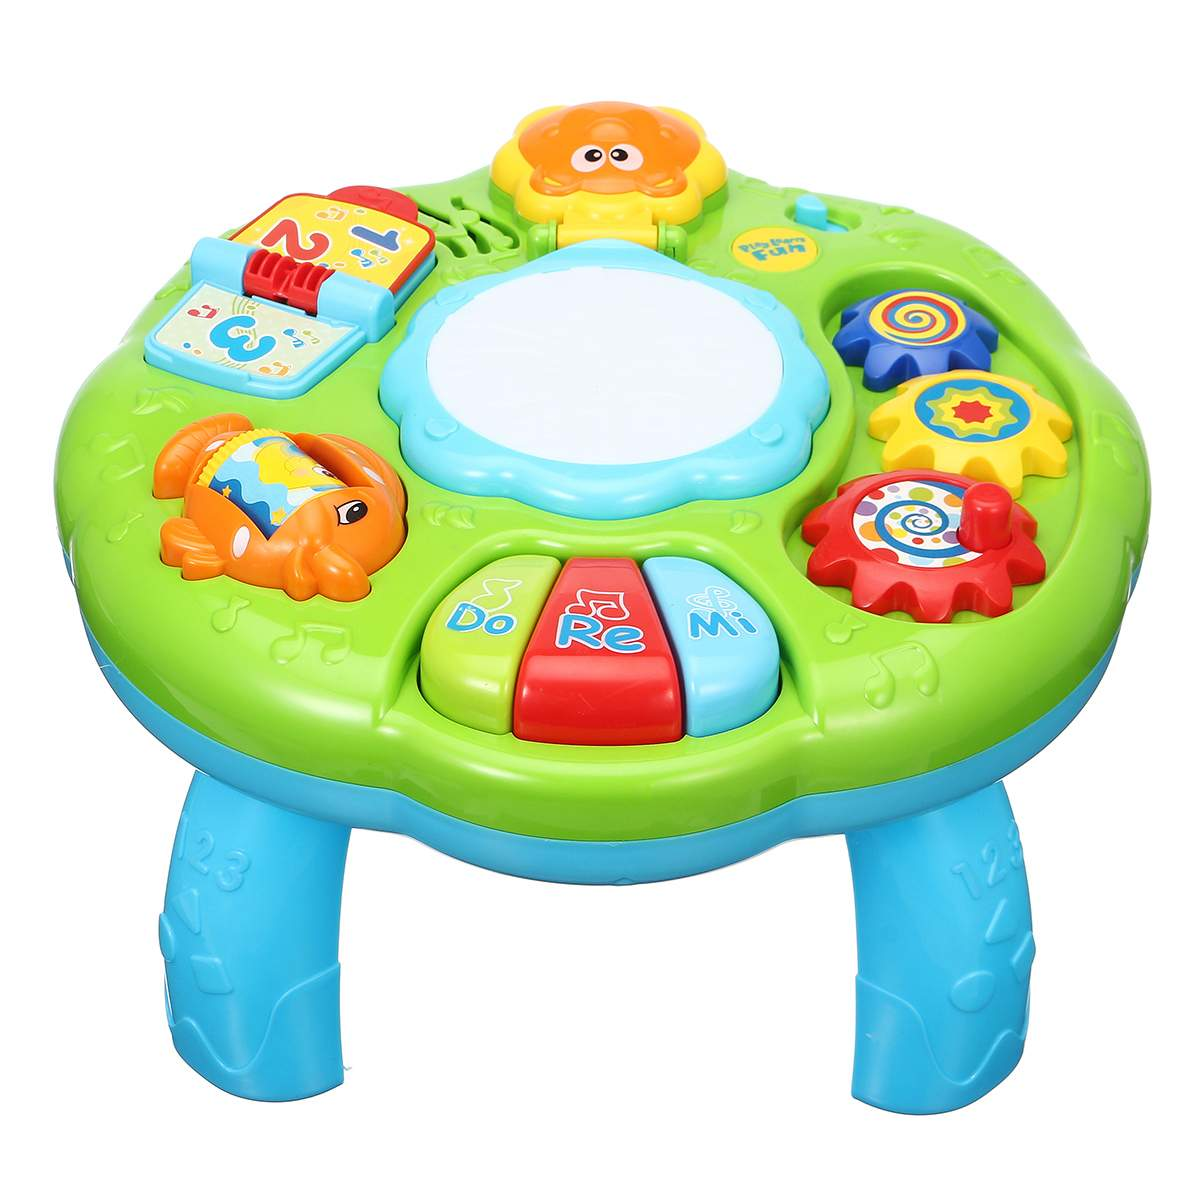 Musical Piano Pat Drum Baby Activity Learning Table Music Drum Games Table Infant Baby Early Educational Toy Gifts 2 Colors